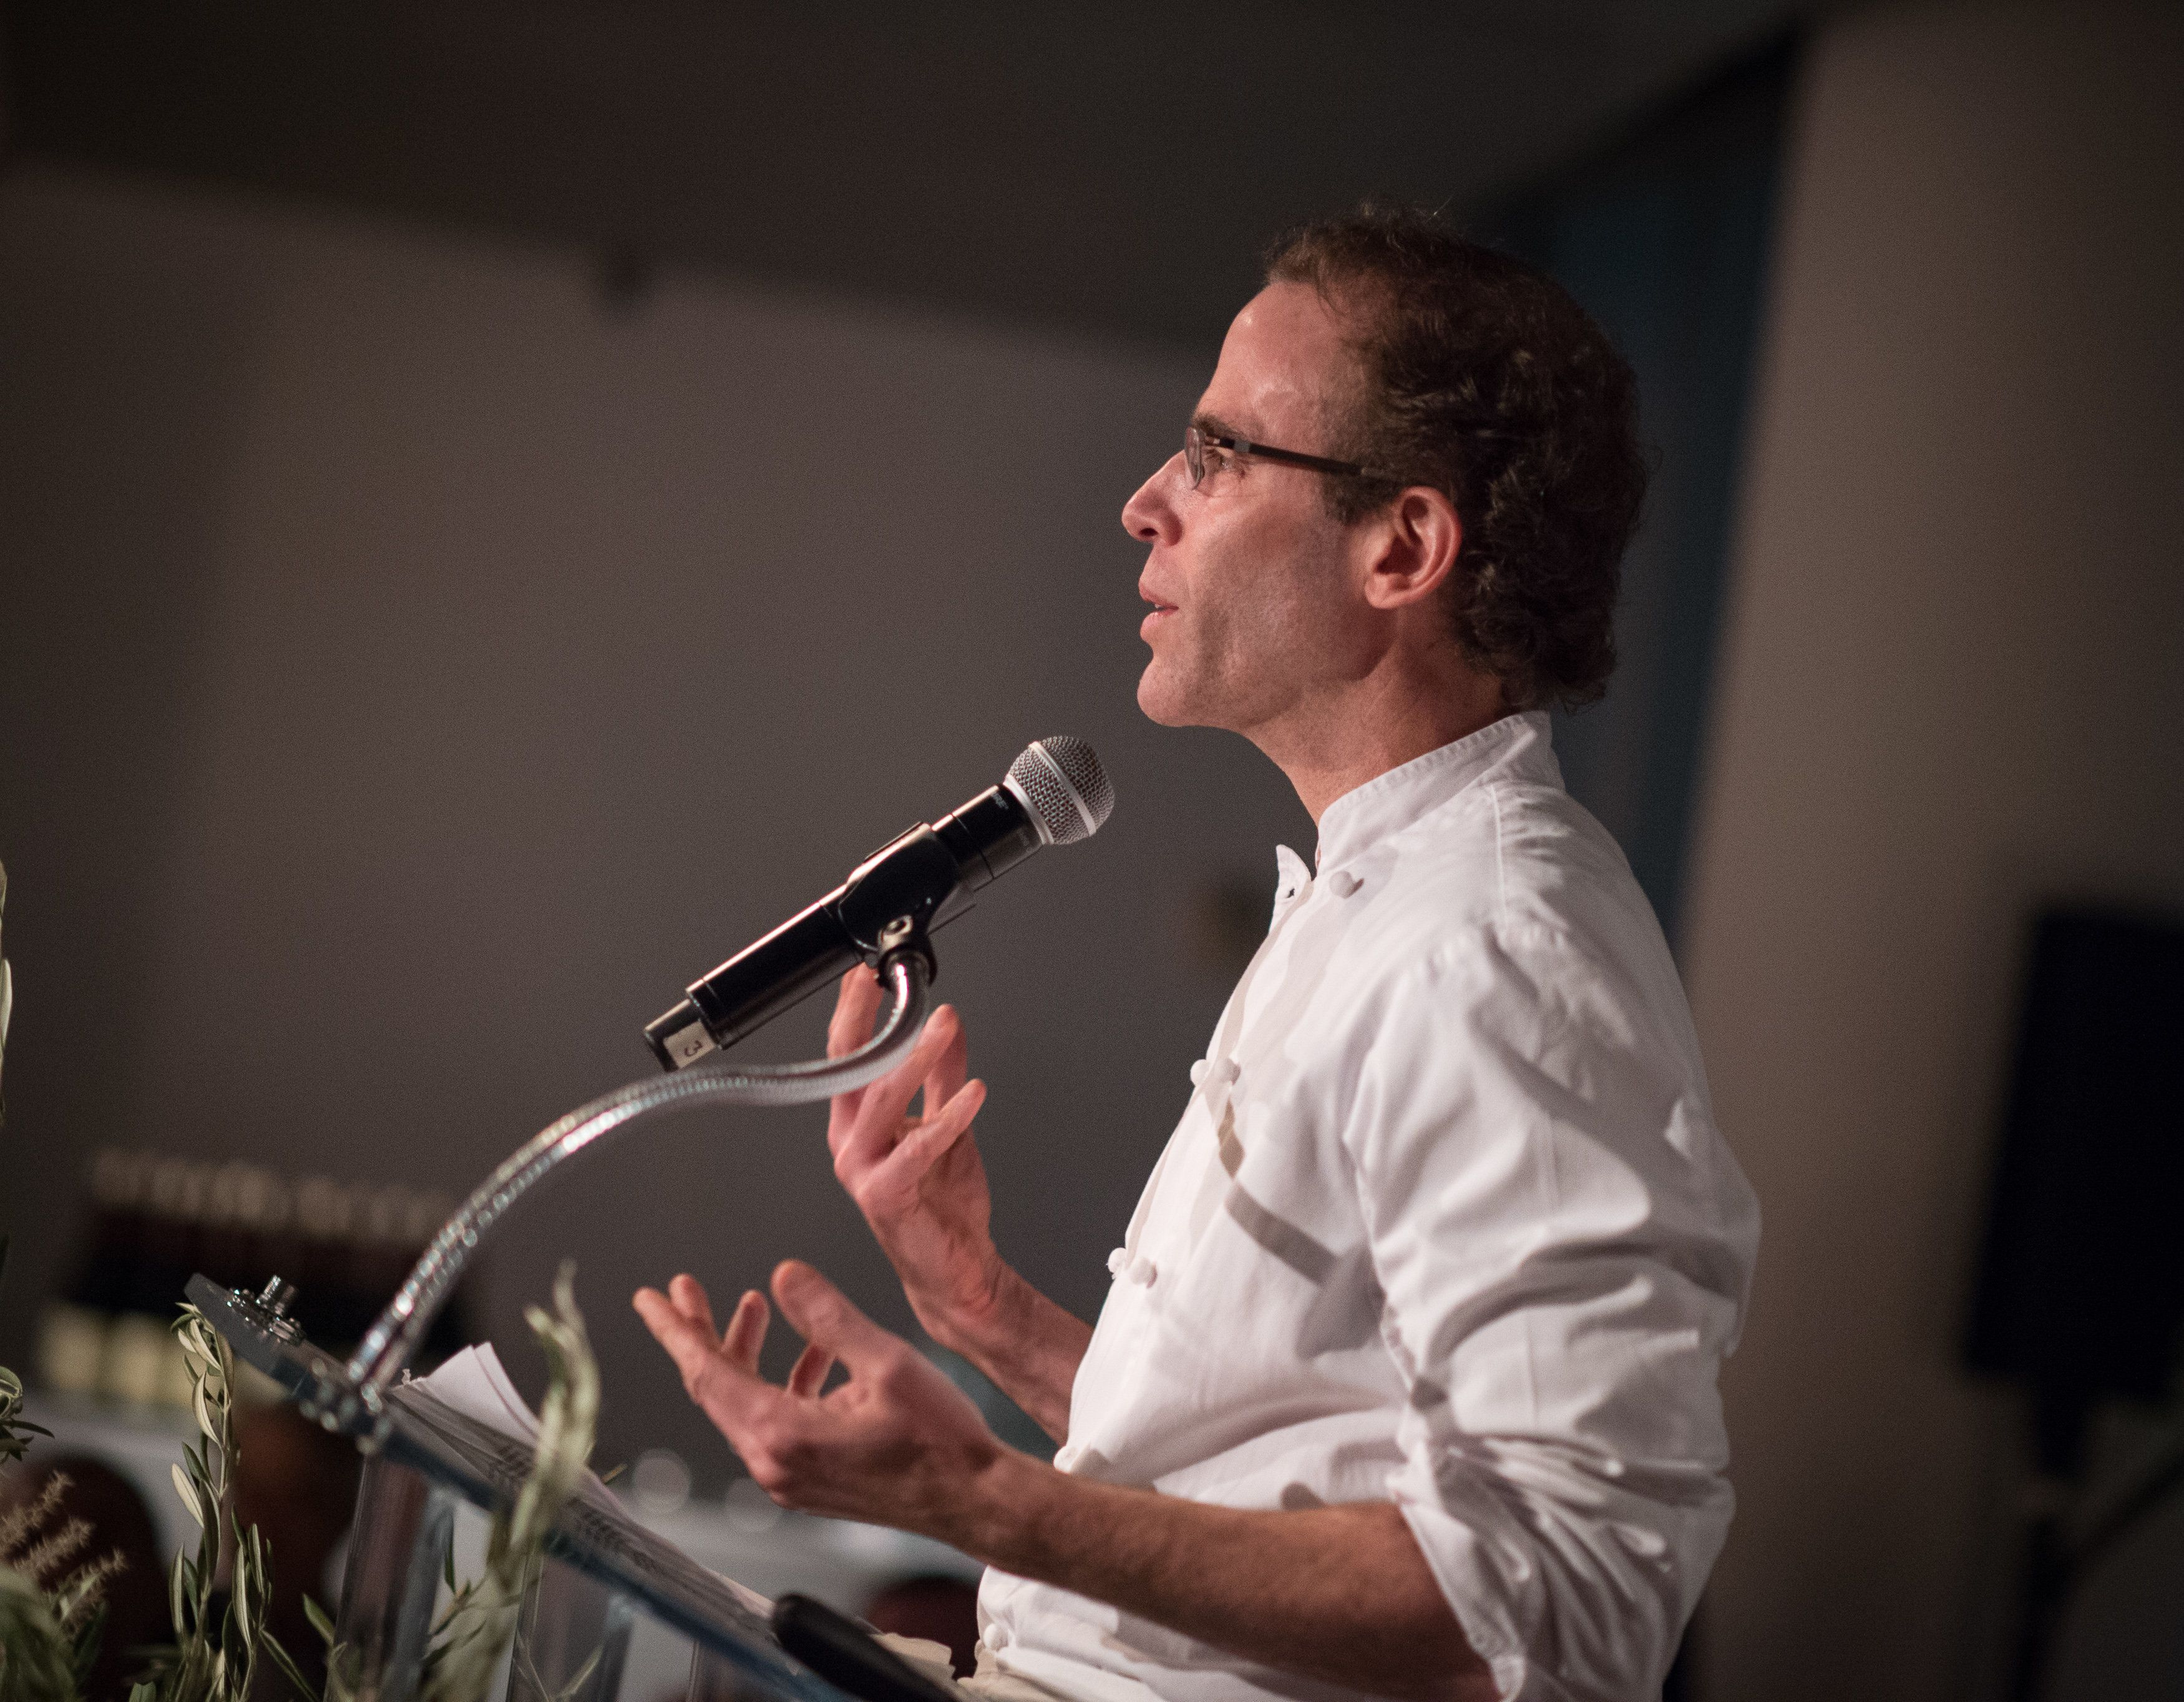 NEW YORK, NY - NOVEMBER 18:  Chef Dan Barber speaks at the Global Green USA 2015 Benefit The Future Of Food at The Glasshouses on November 18, 2015 in New York City.  (Photo by Dave Kotinsky/Getty Images for Global Green USA)